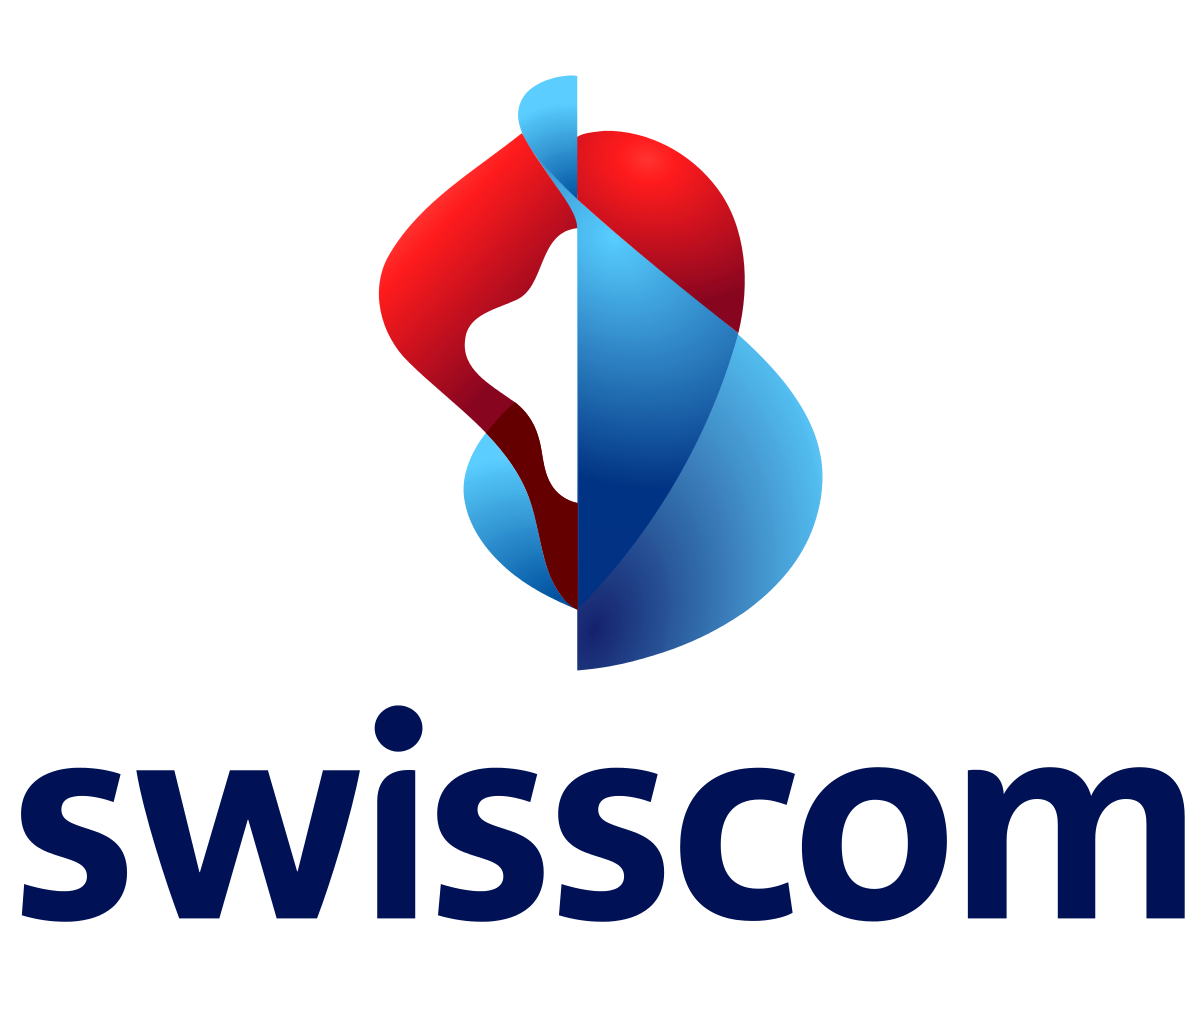 Swisscom-logo-and-wordmark.png